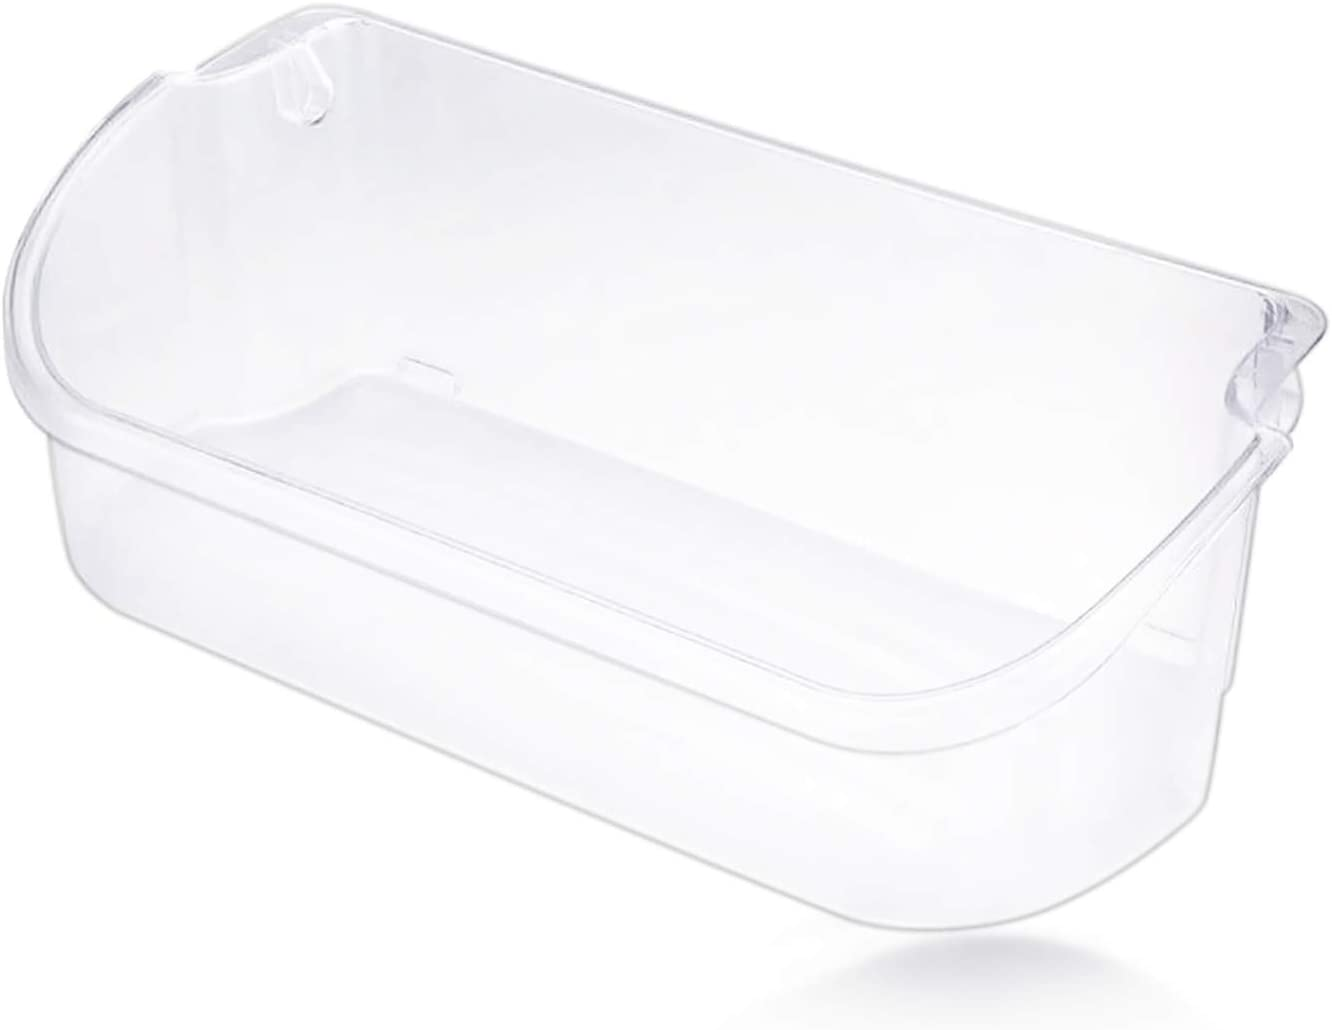 240356402 Clear Refrigerator Door Bin Shelf of Gallon Size - Primeswift Replacement for Frigidaire Kenmore AP2549958 240430312 240356416